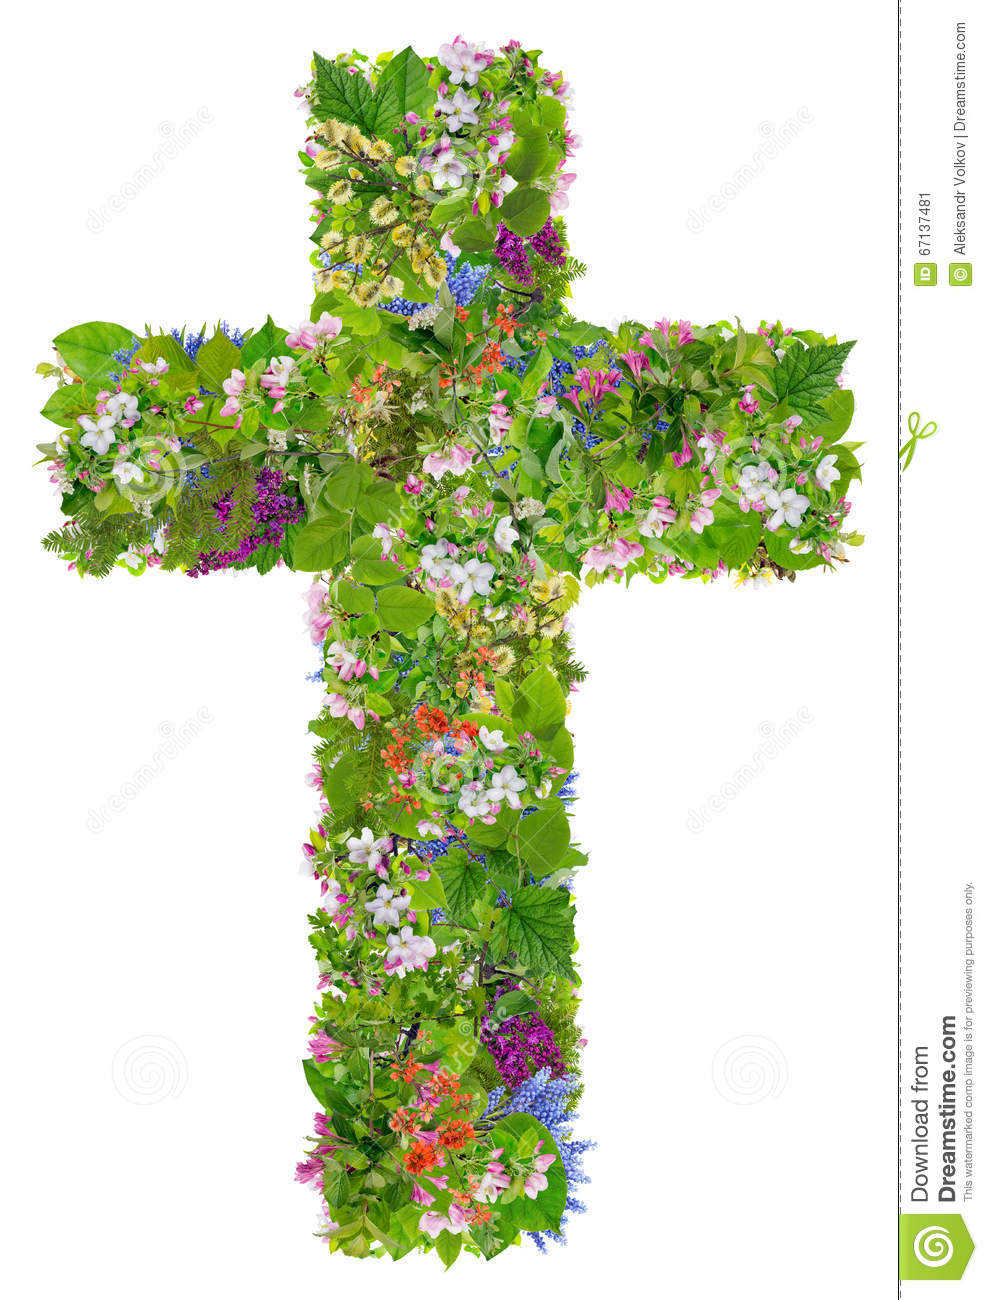 Easter Green Spring Cross Of Jesus Stock Image - Image of apple ...